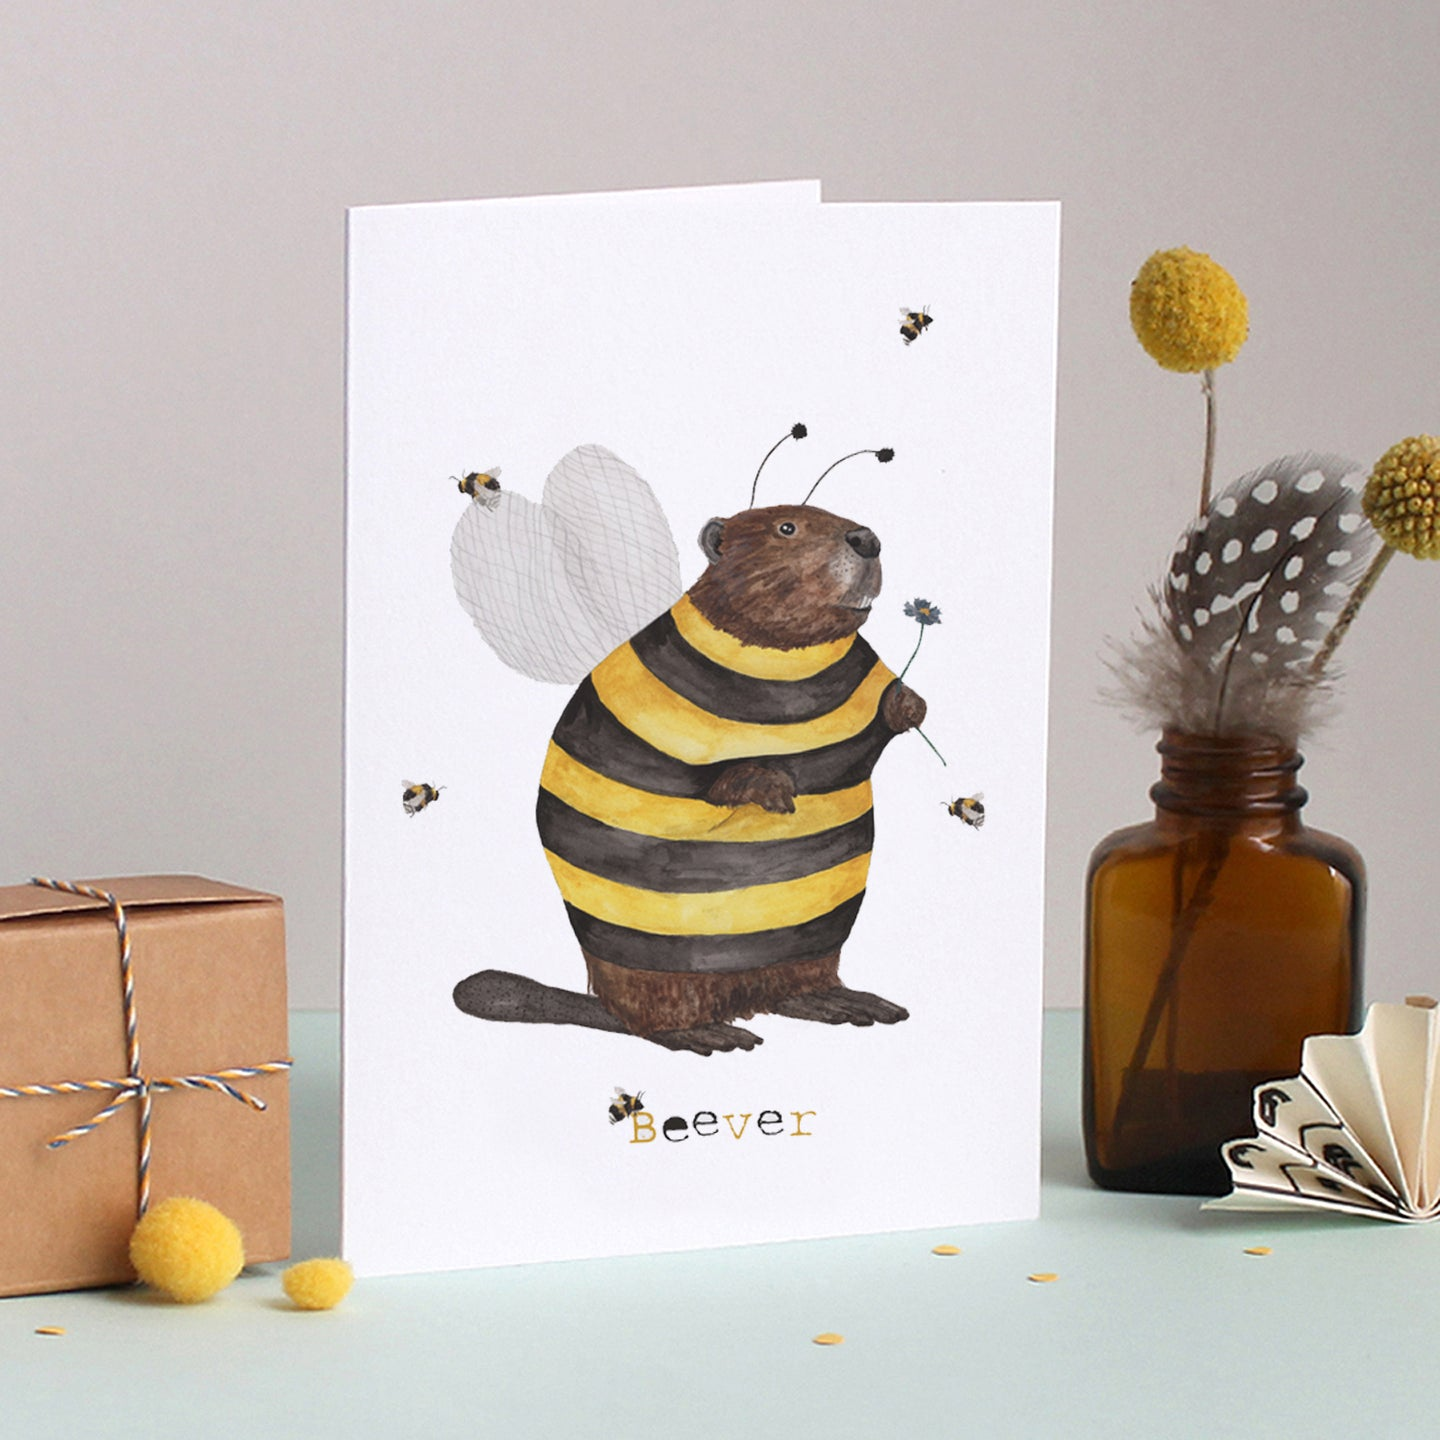 Beever Card